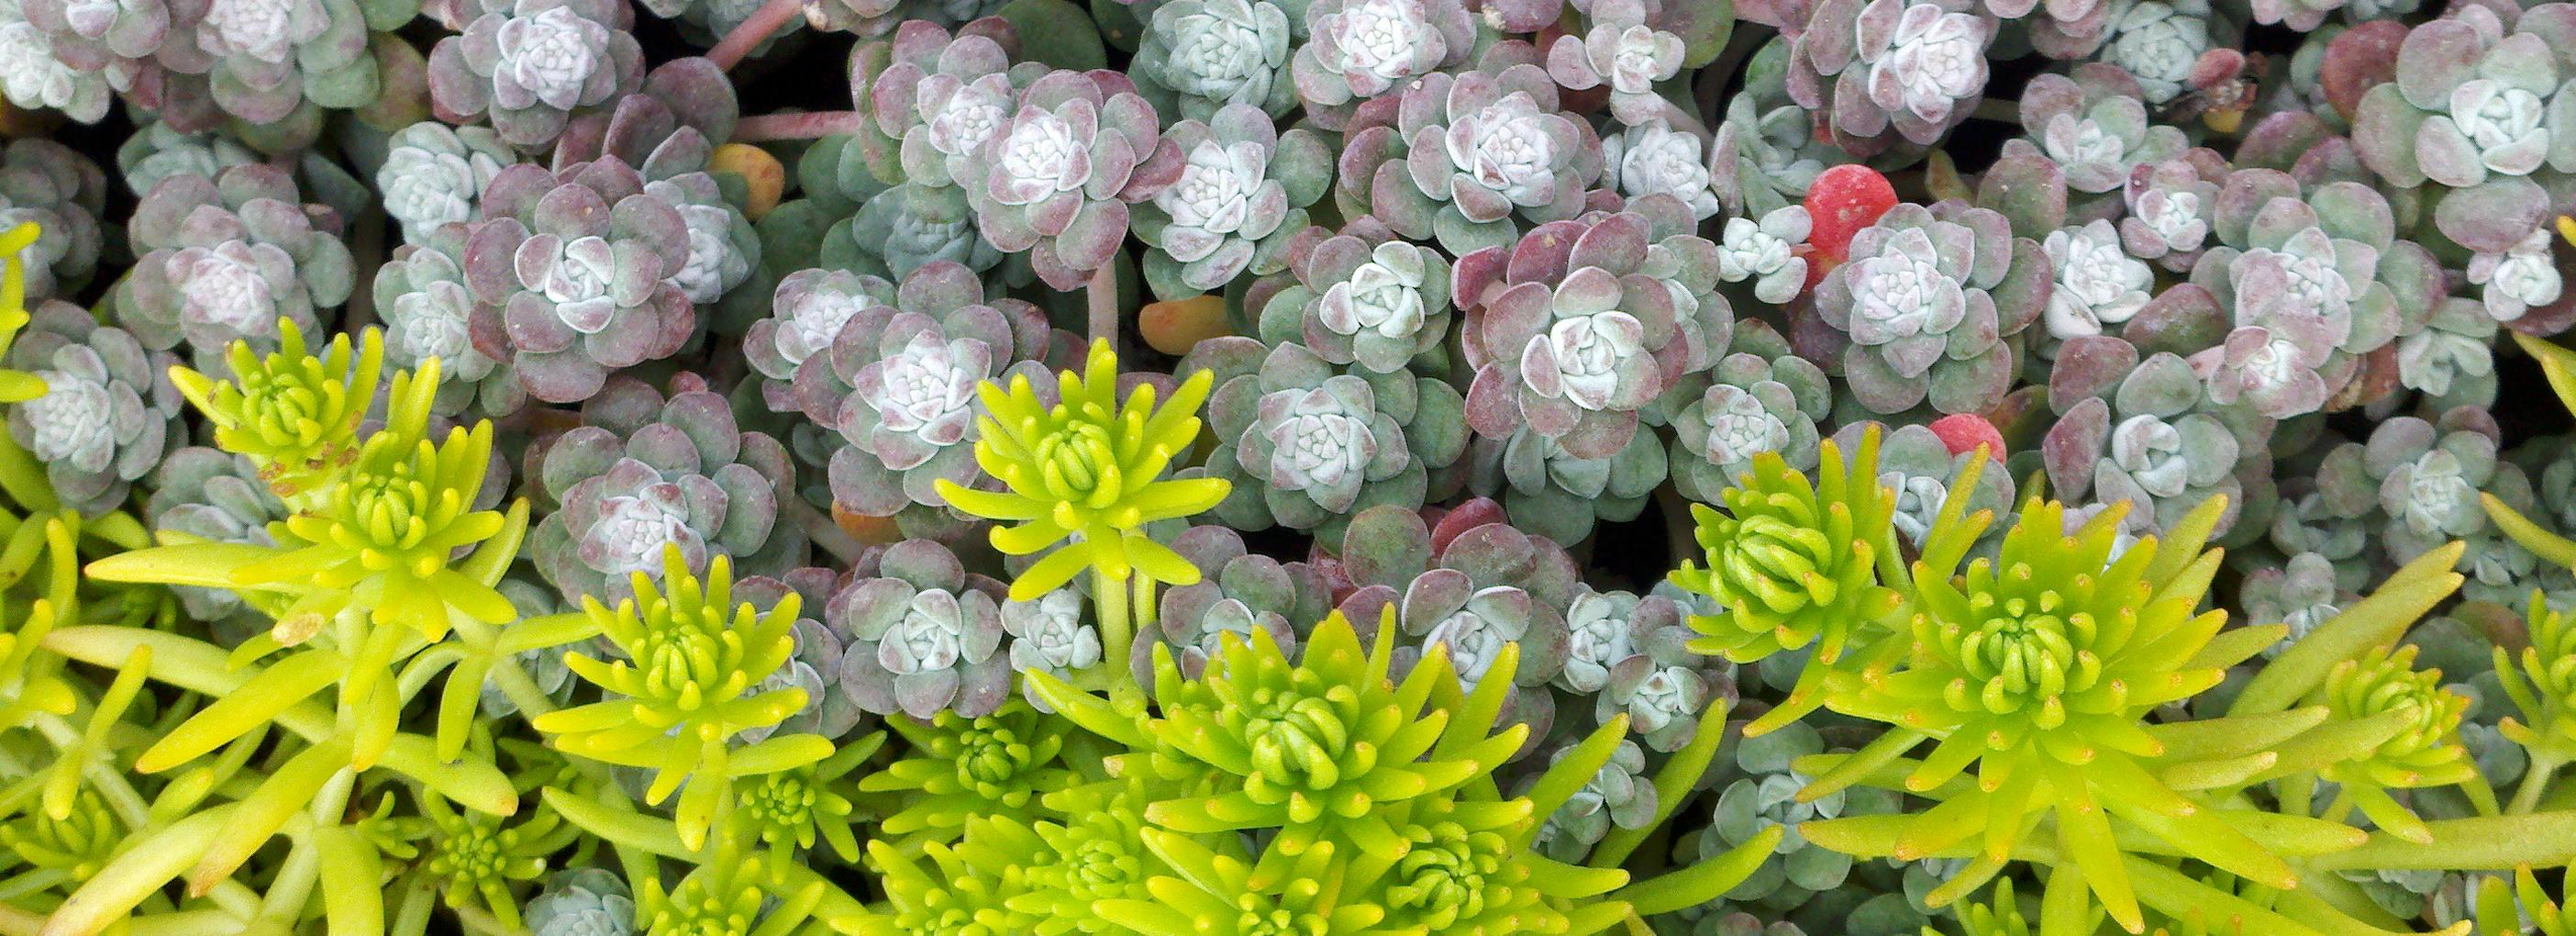 Sedum 'Angelina' and Sedum spathulifolium 'Cape Blanco'